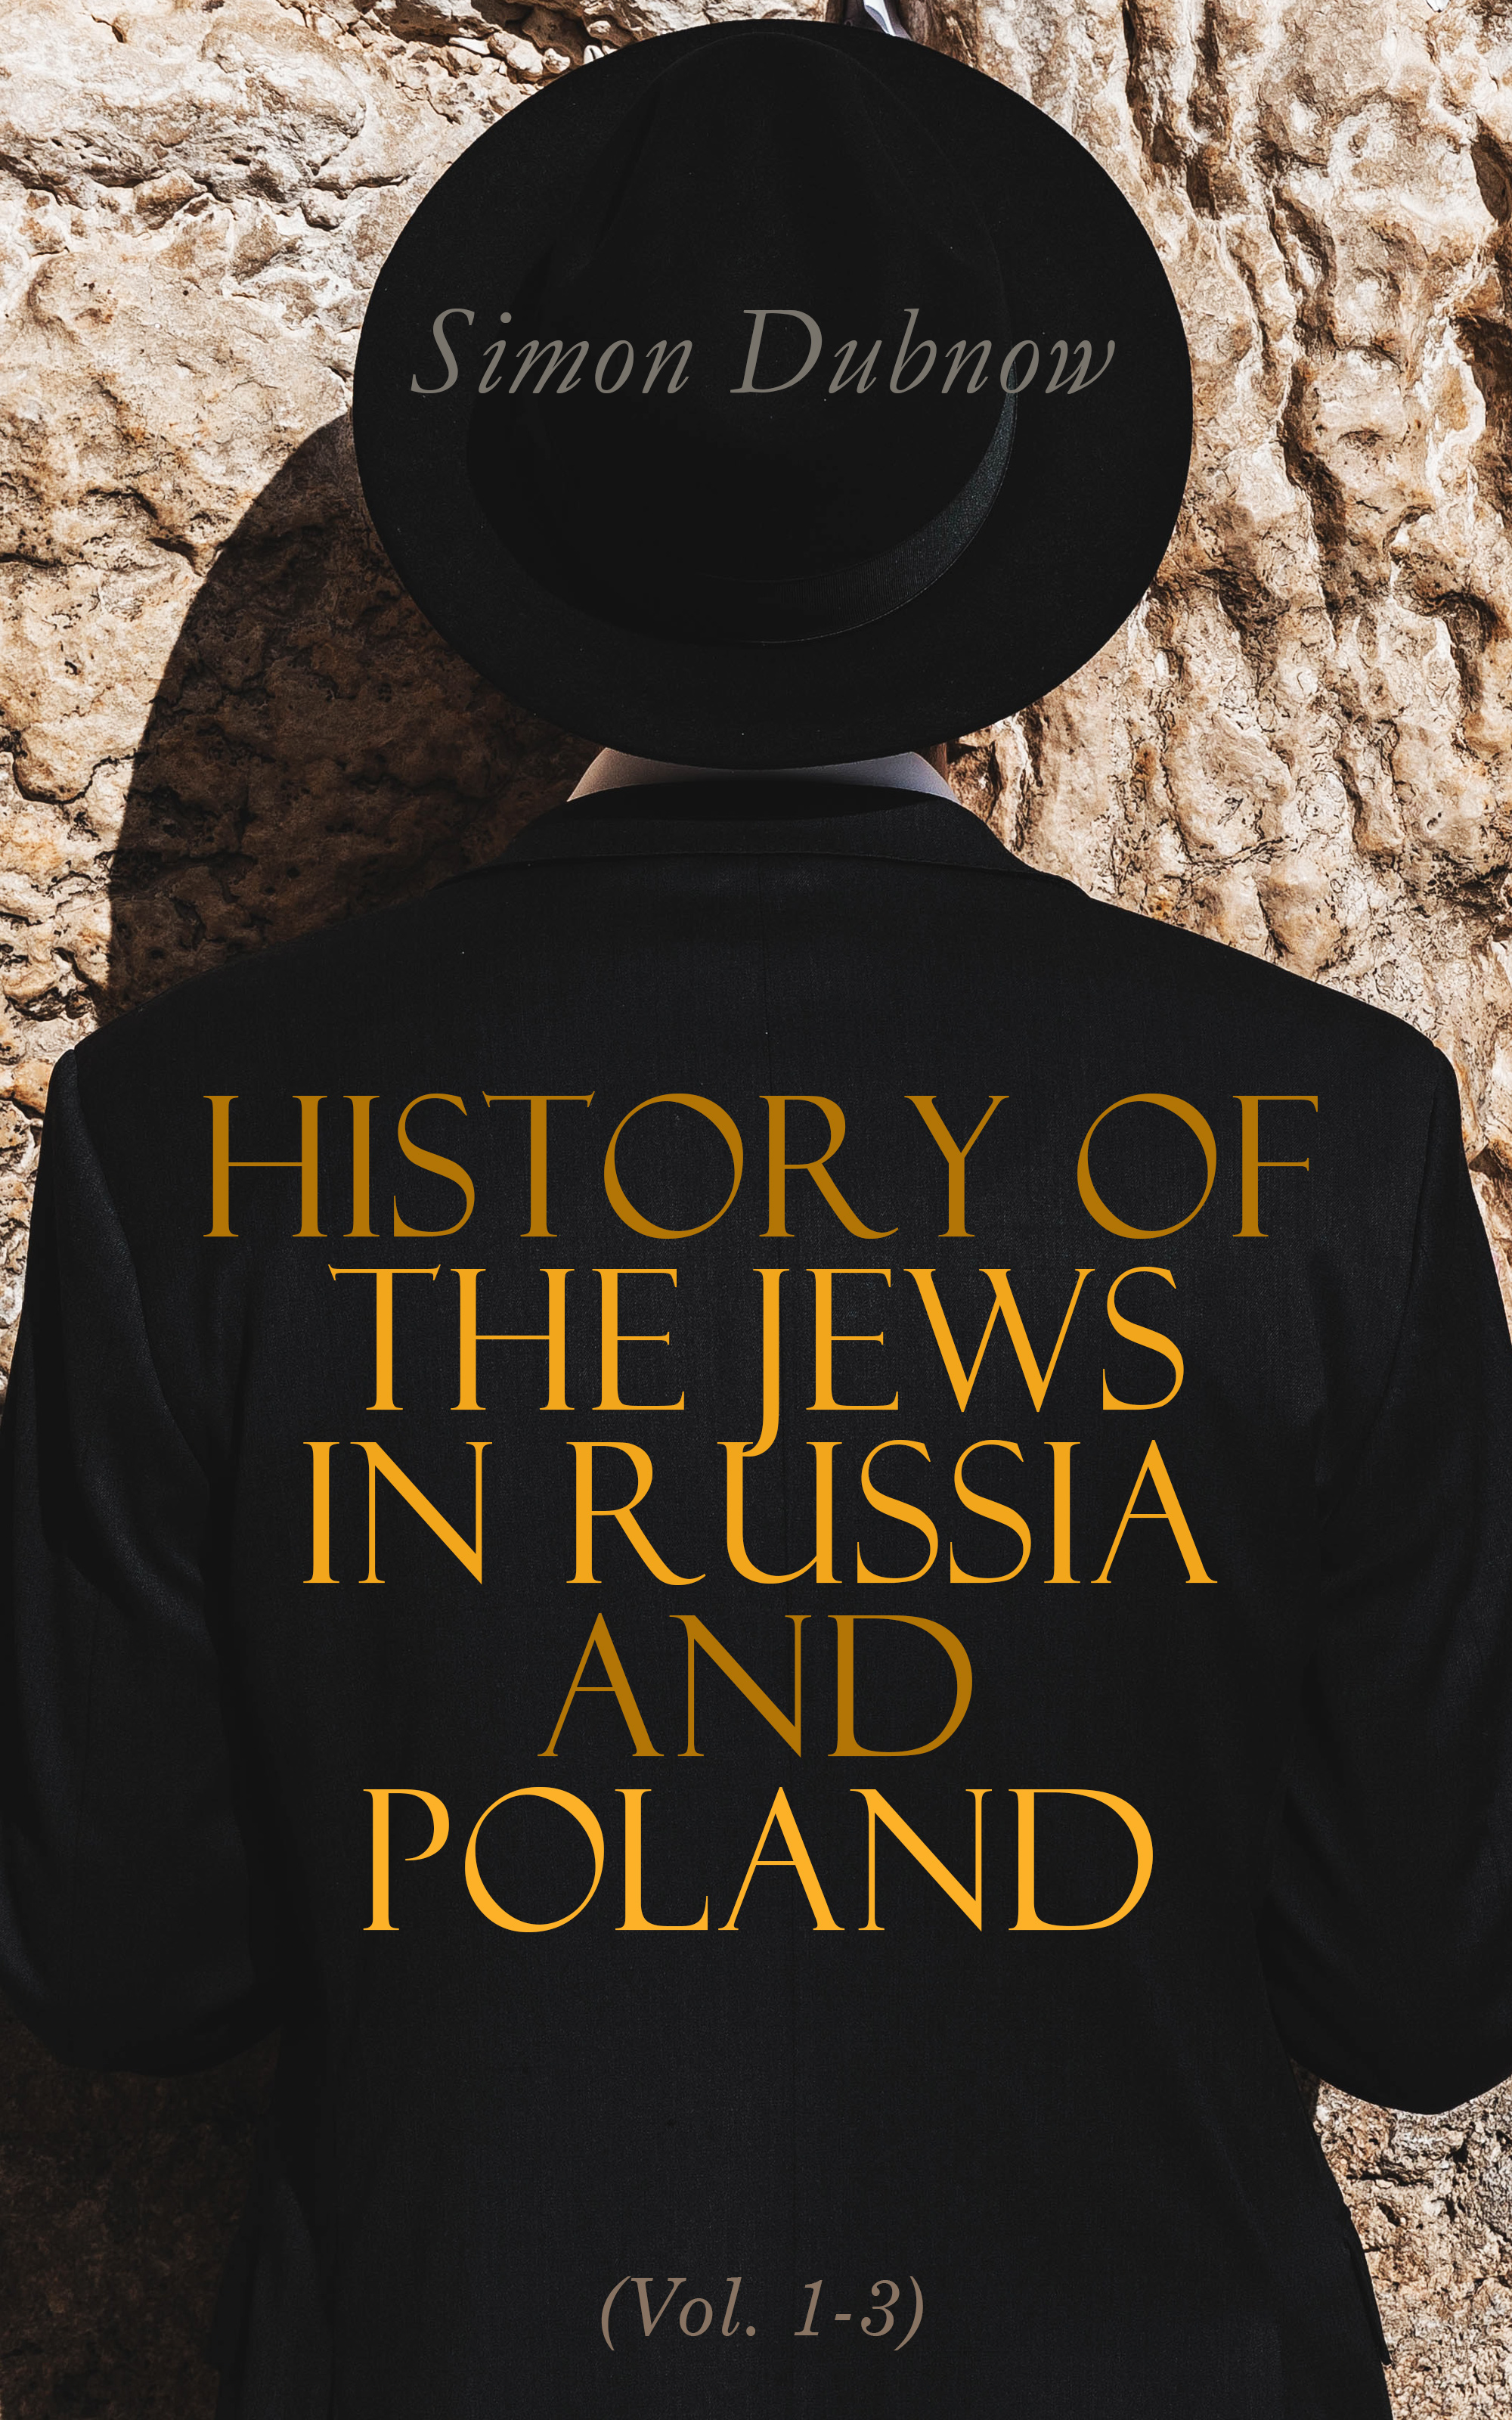 Dubnow Simon History of the Jews in Russia and Poland (Vol. 1-3) недорого